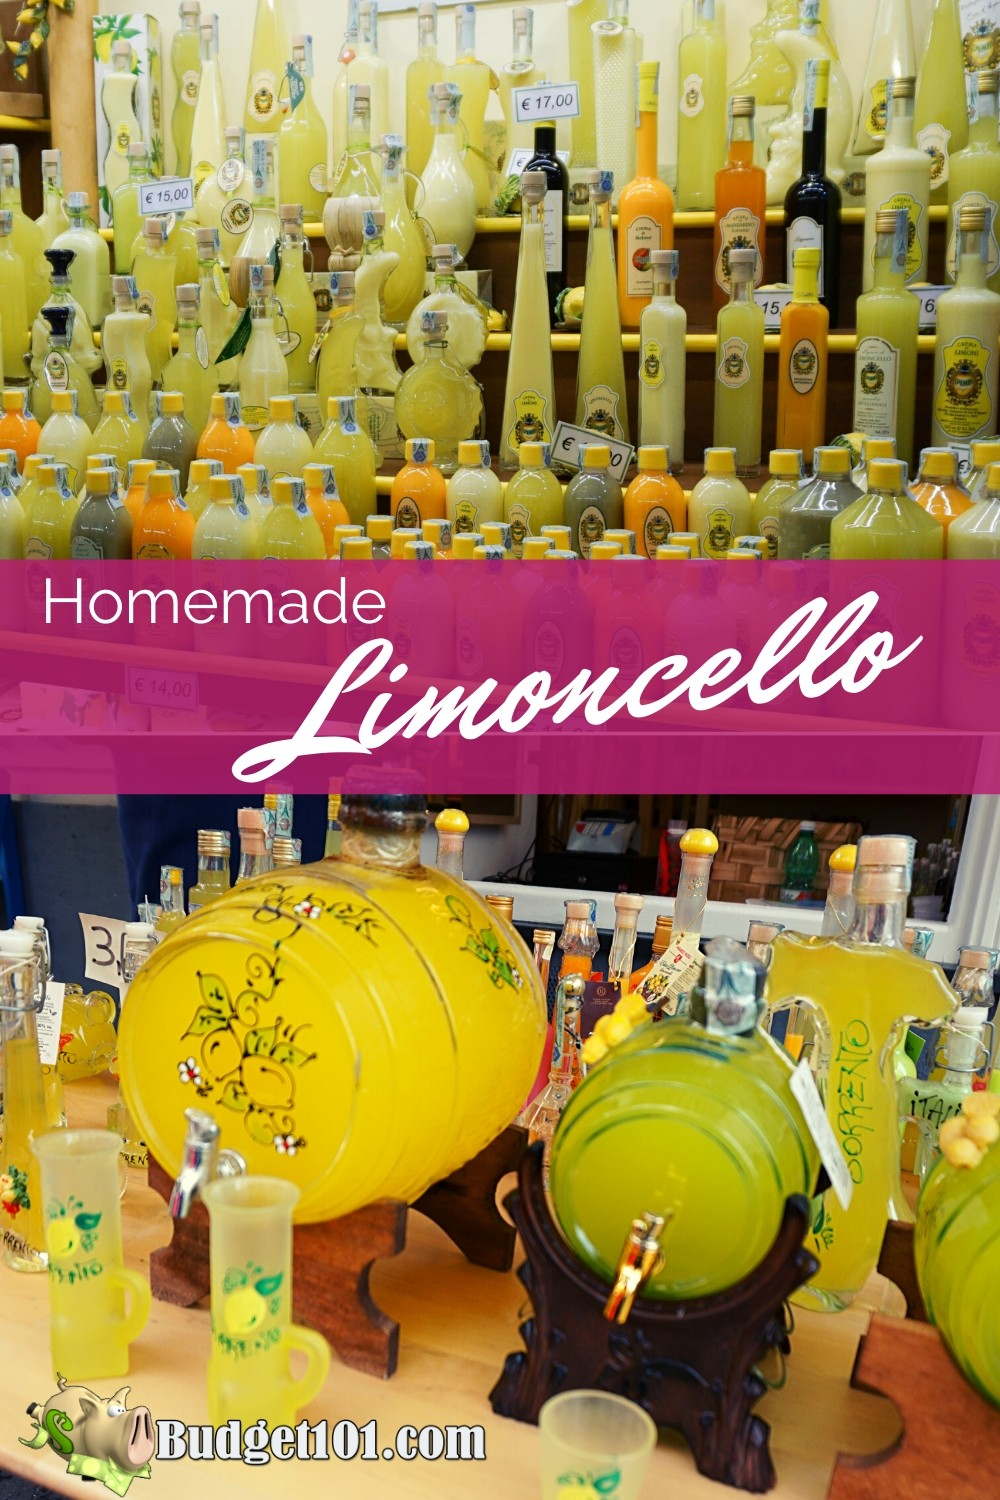 Originally an Italian Lemon Liqueur produced in Southern Italy, Limoncello is a smooth vibrant flavored apertif. Making your own Homemade Limoncello is easy! #Budget101 #Italy #Limoncello #MYO